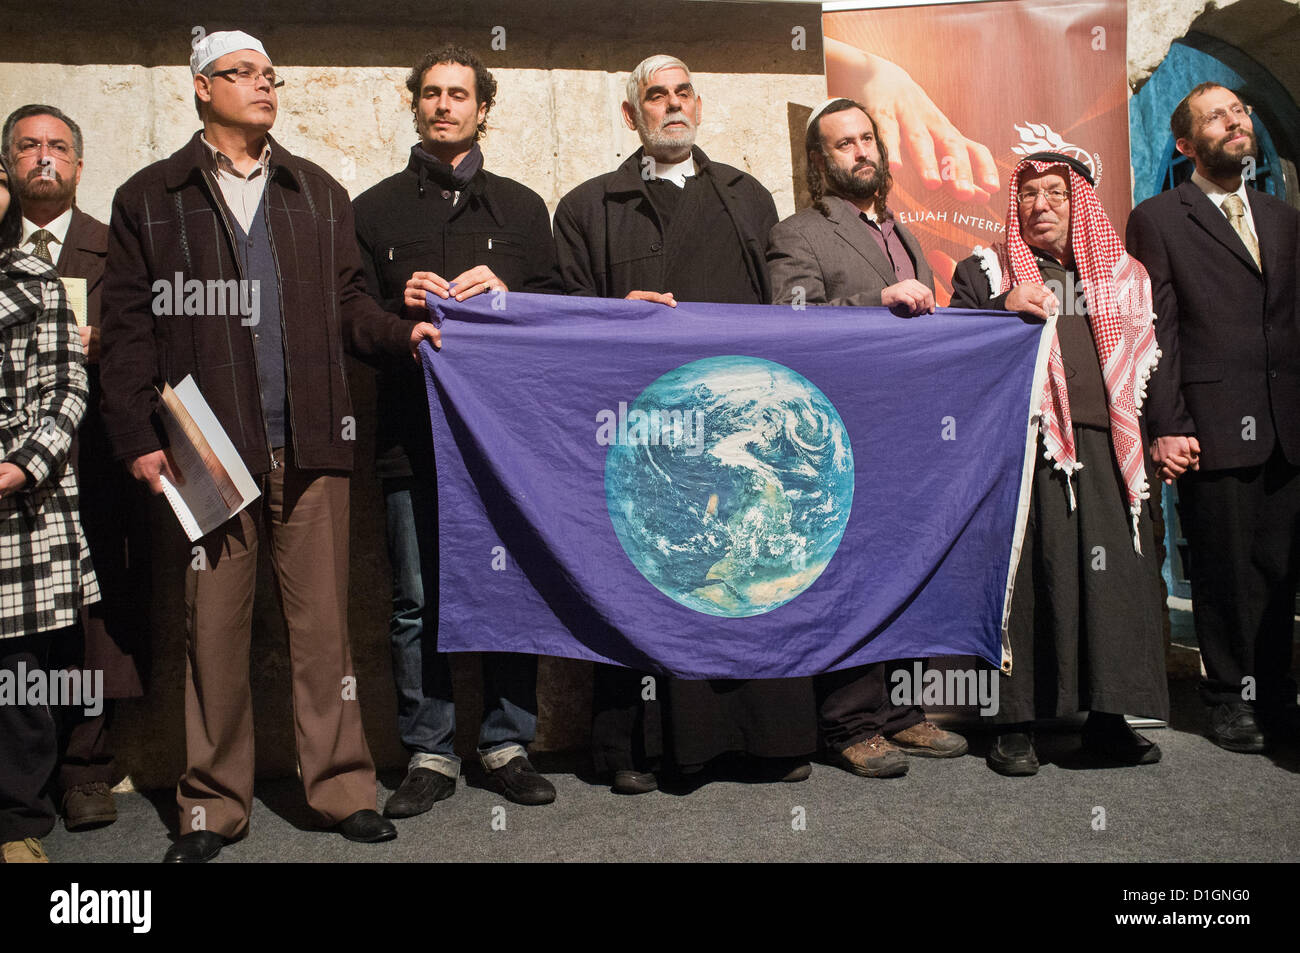 Jerusalem, Israel. 21st December 2012. Jewish, Christian and Muslim religious leaders at an interfaith prayer of - Stock Image